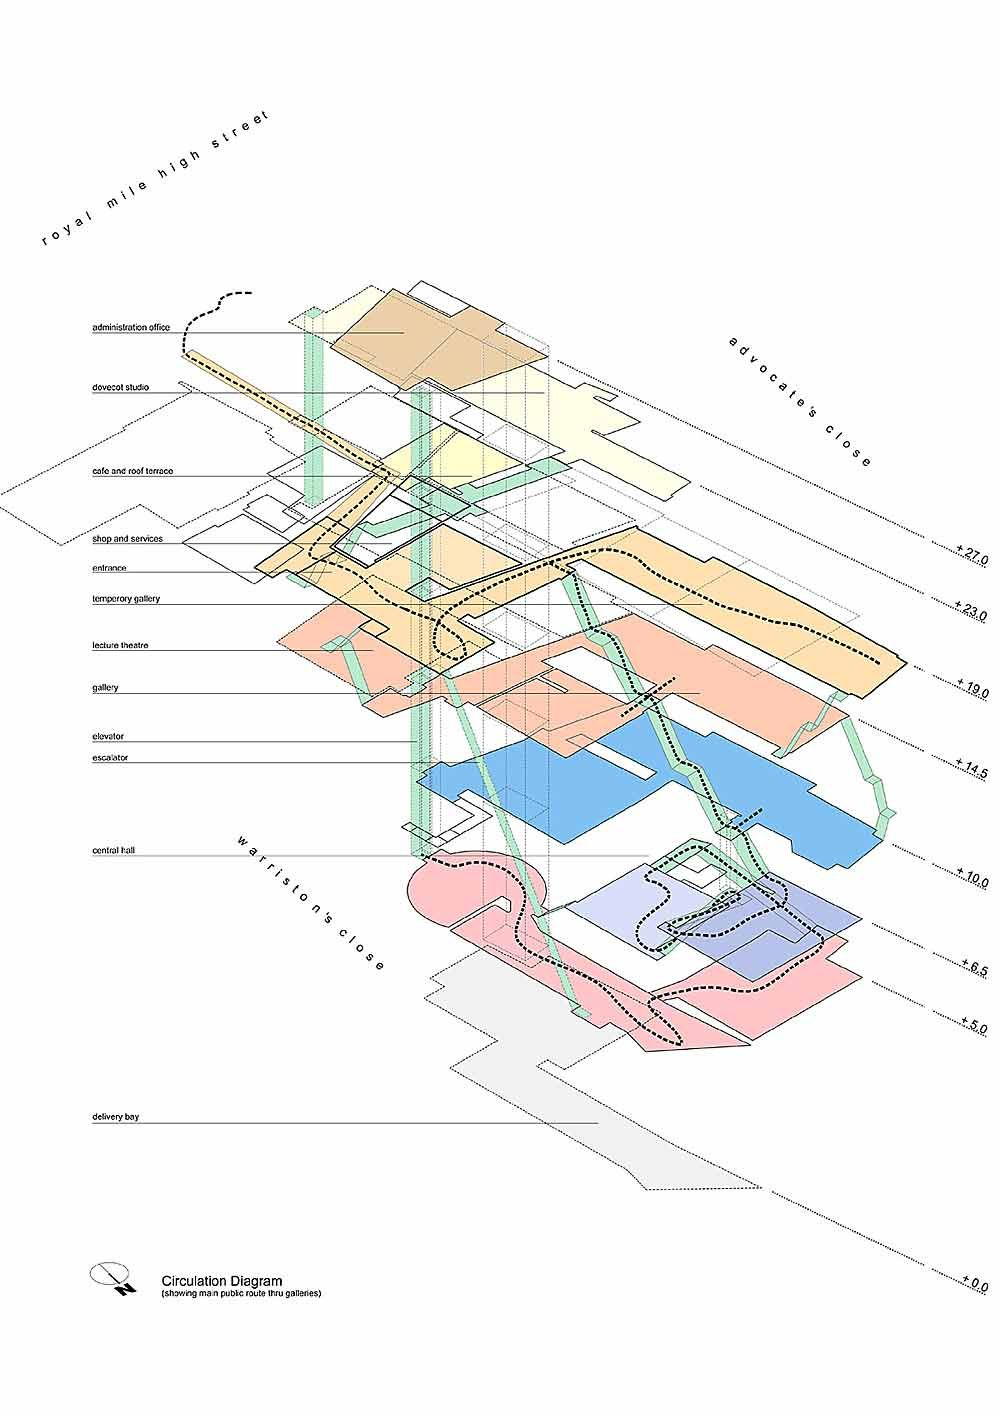 small resolution of architectural circulation diagram google search arc607 diagram architectural circulation diagram google search